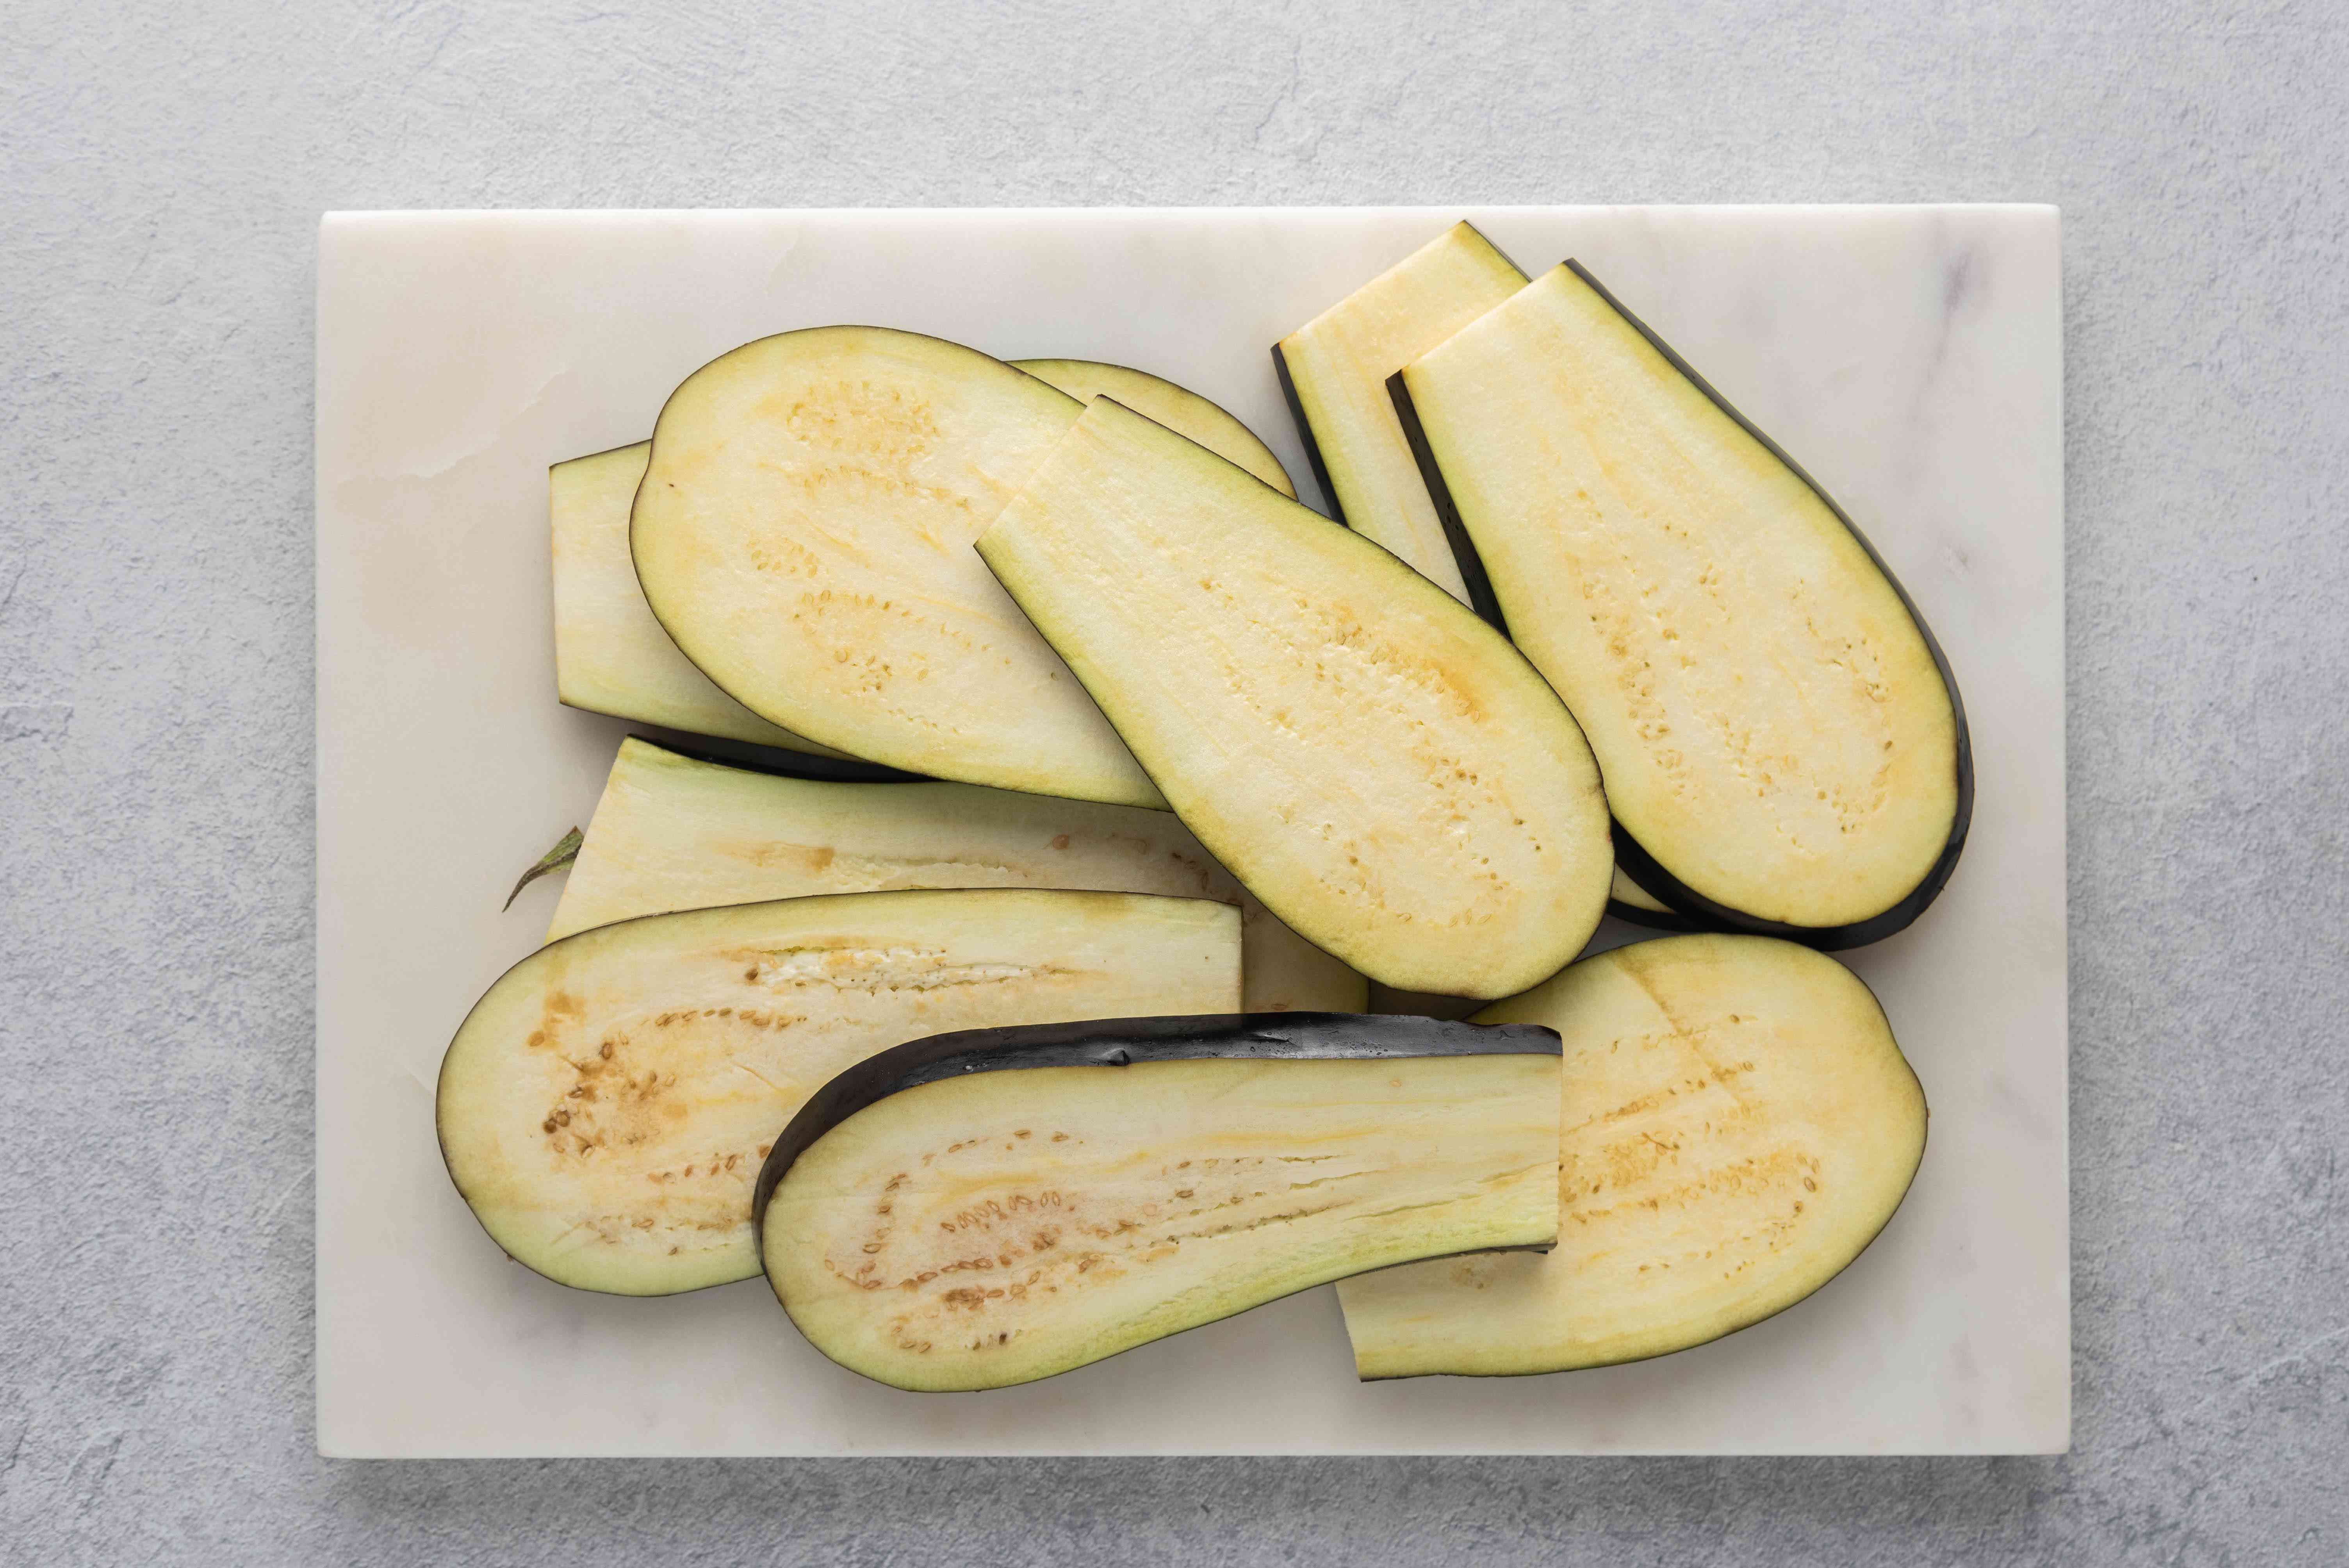 eggplants cut lengthwise, thick slices